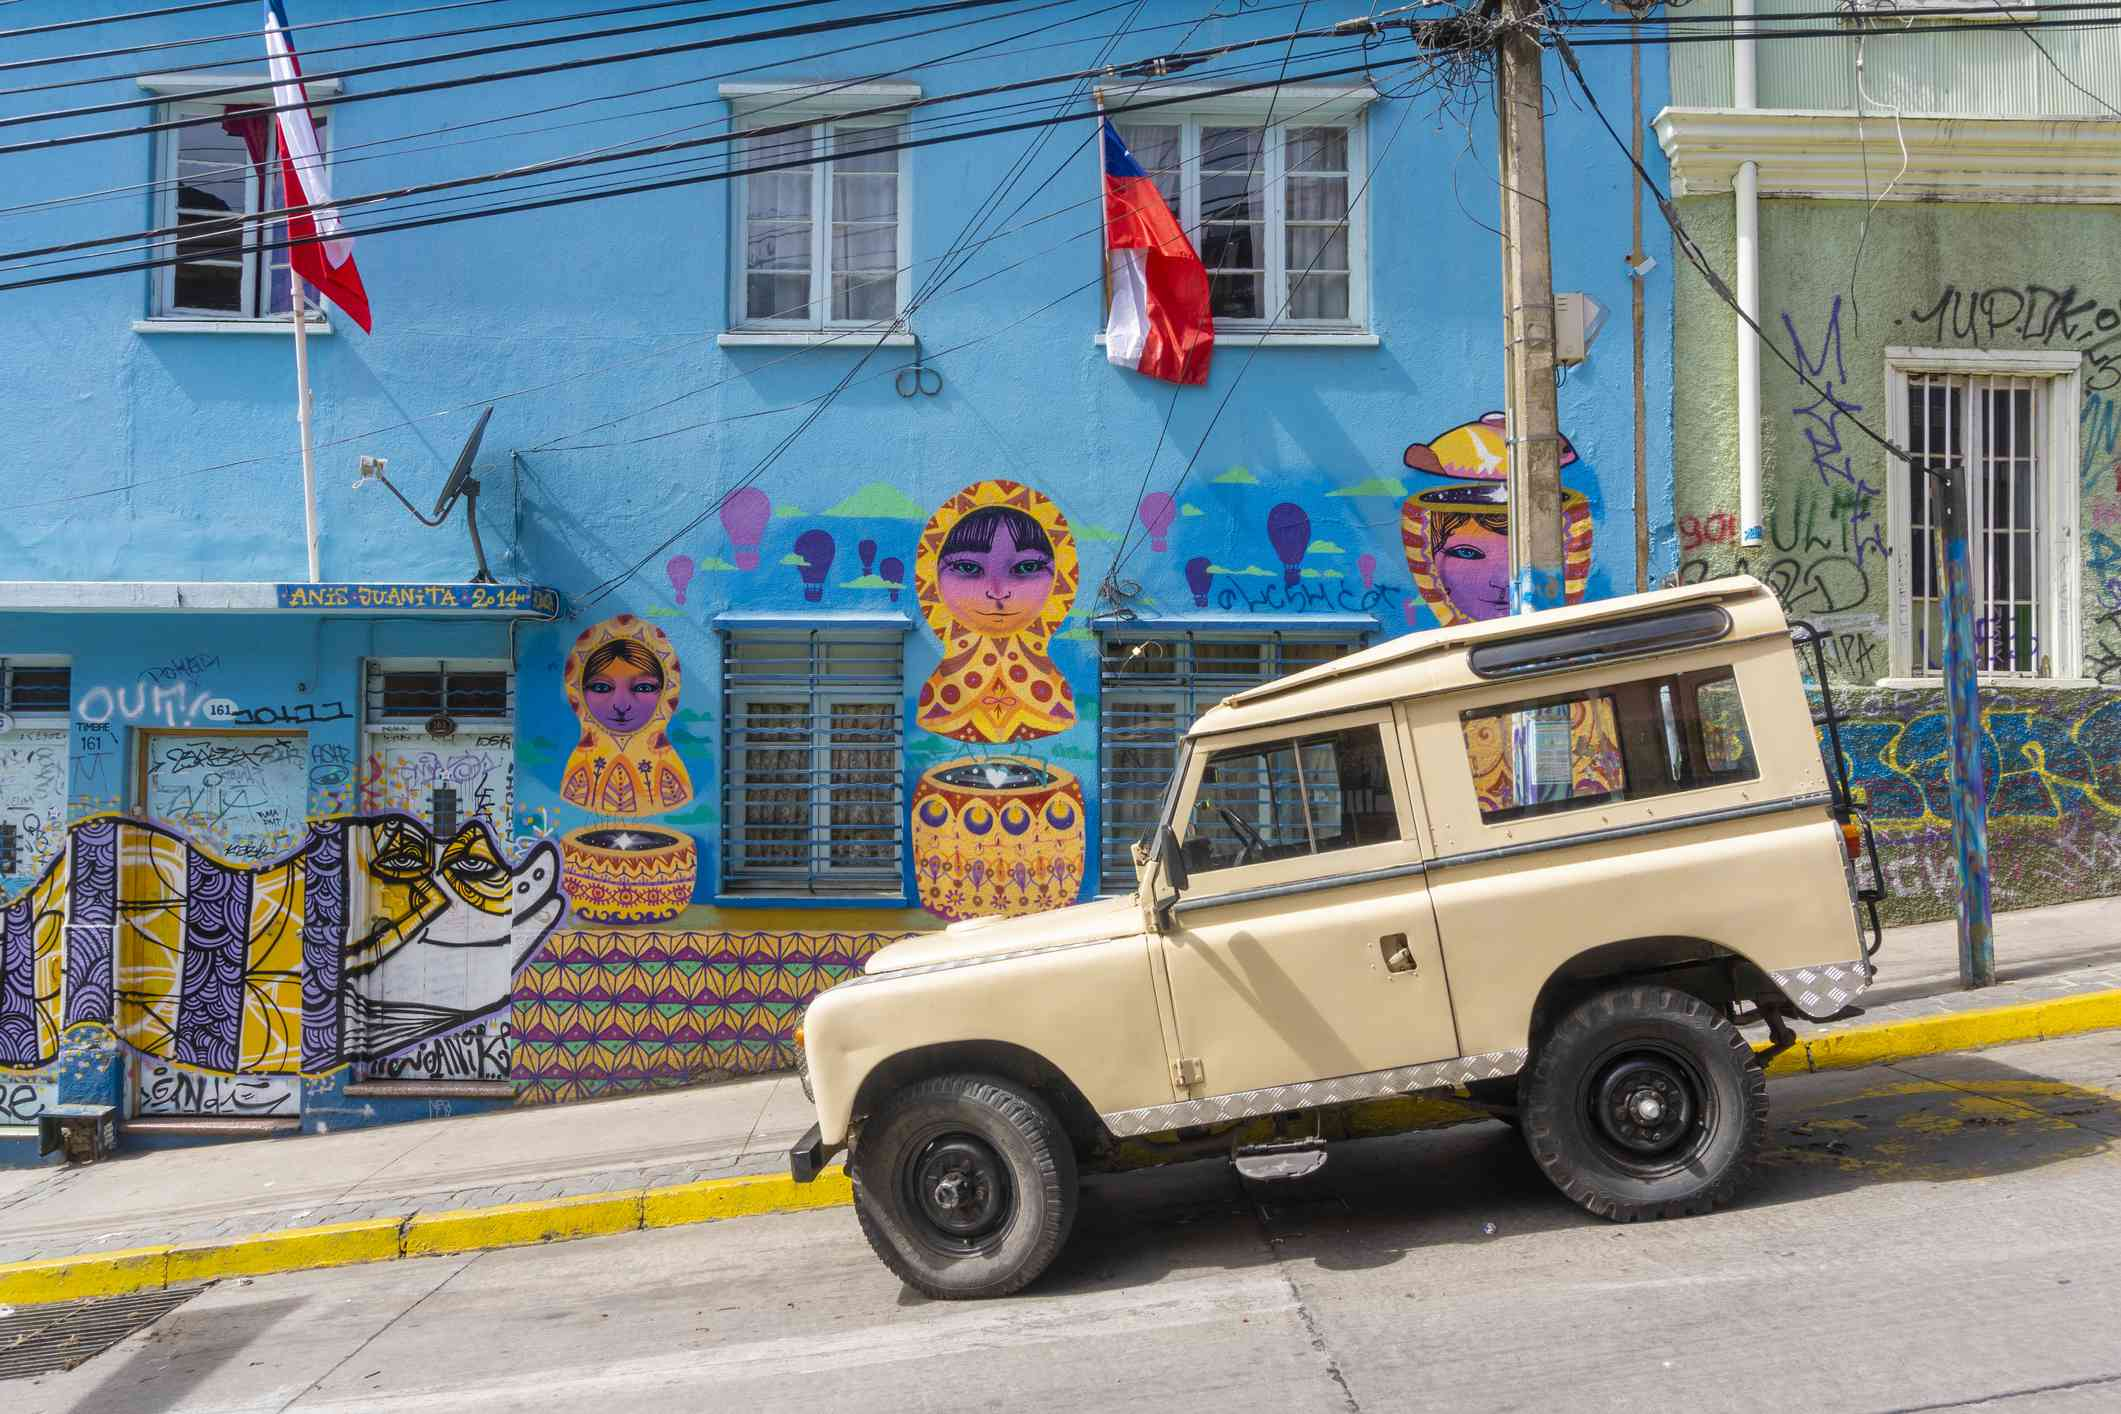 Valparaiso, Chile - Sep 19, 2018: Street arts, graffiti along a street in Valparaiso, Chile. The historic quarter of the city was declared as a UNESCO World Heritage site.